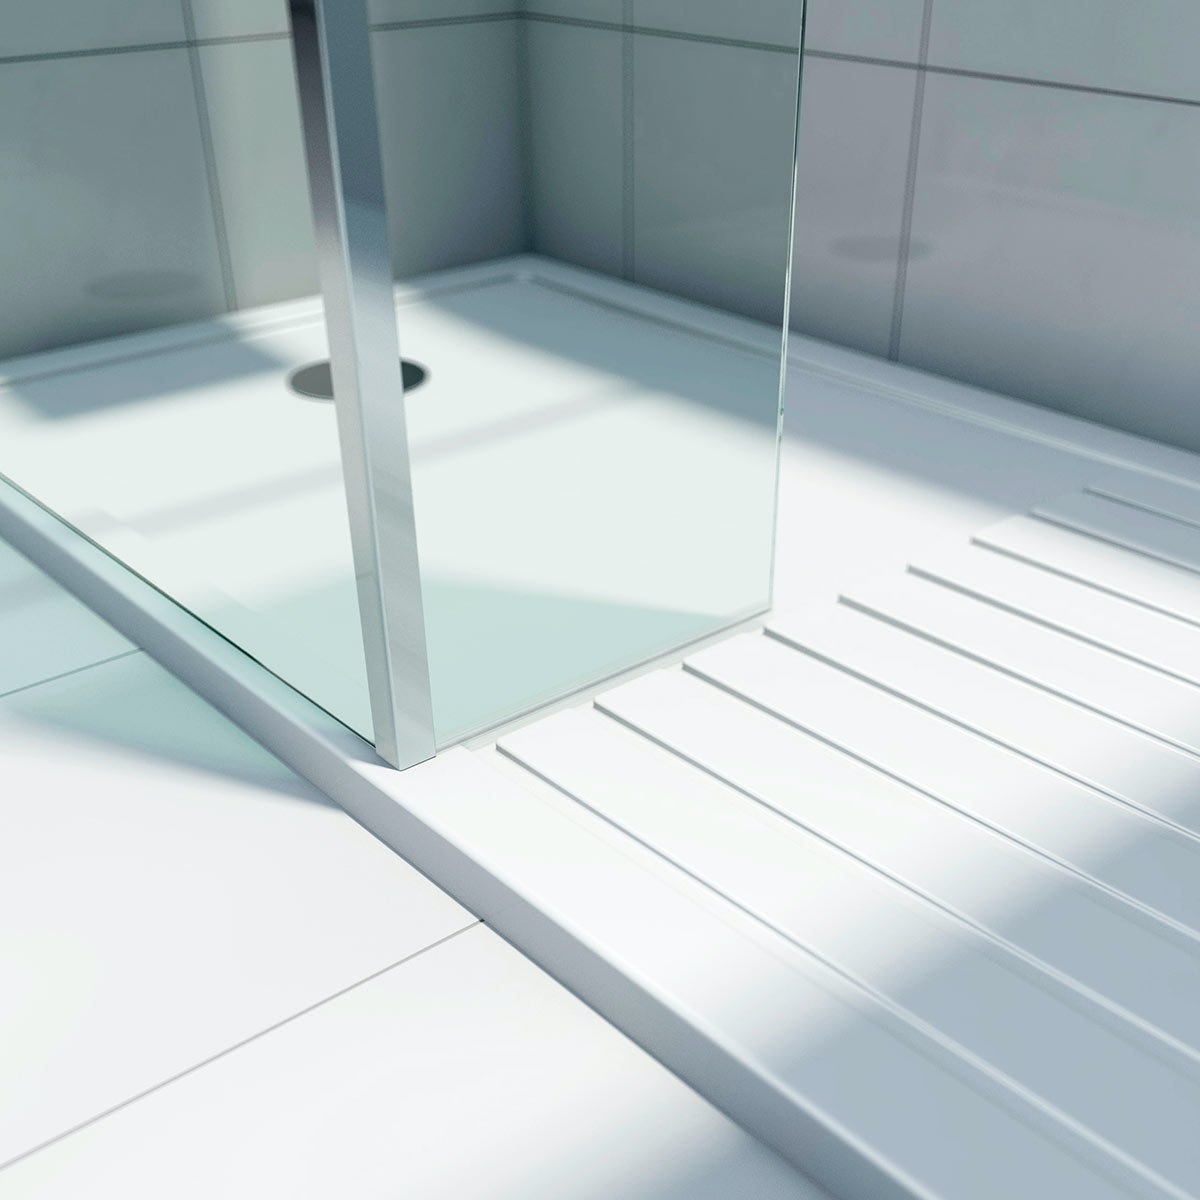 Mode Luxury 8mm Walk In Shower Enclosure Pack With Tray